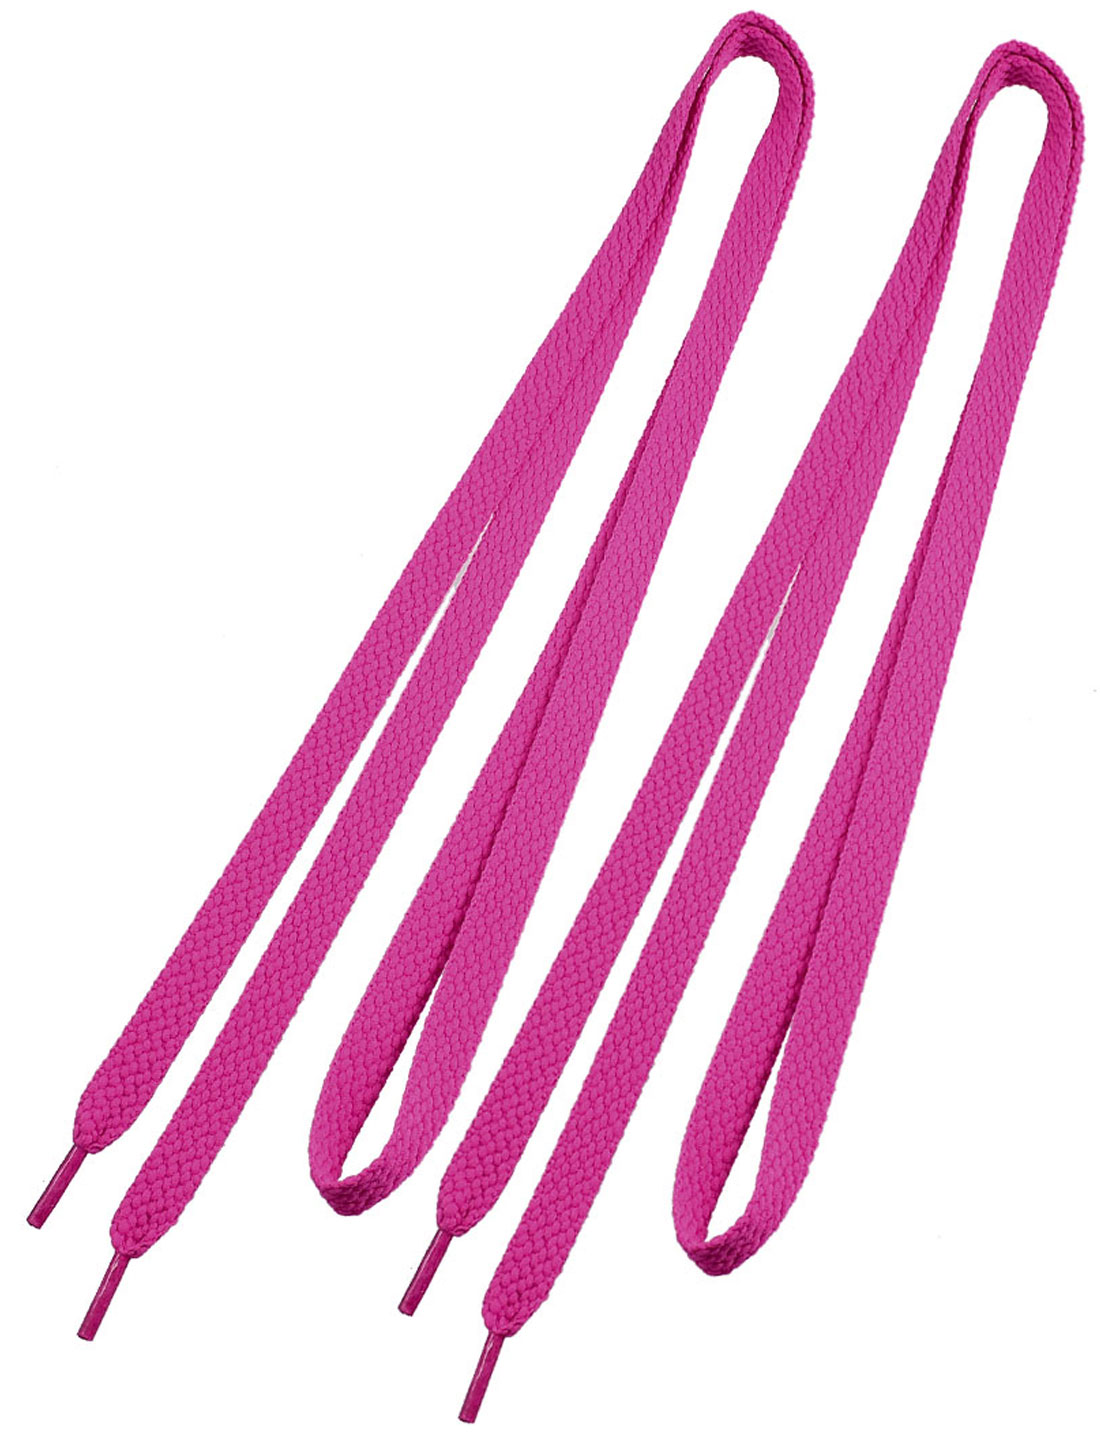 Pair Fuchsia Flat Shoelaces Sports Shoes Strings Replacement for Lady